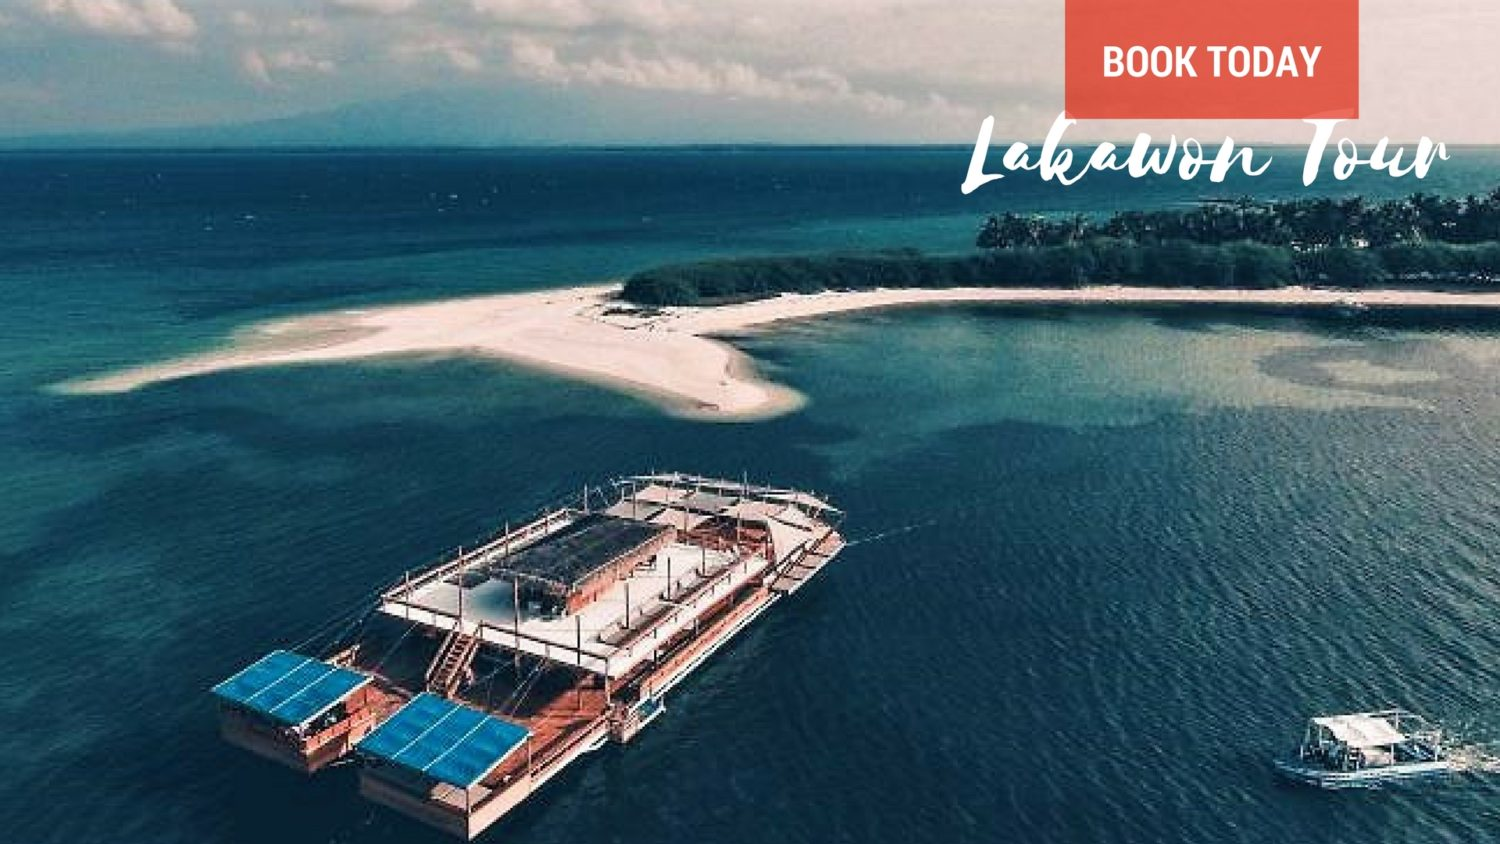 How to Travel to Lakawon Island